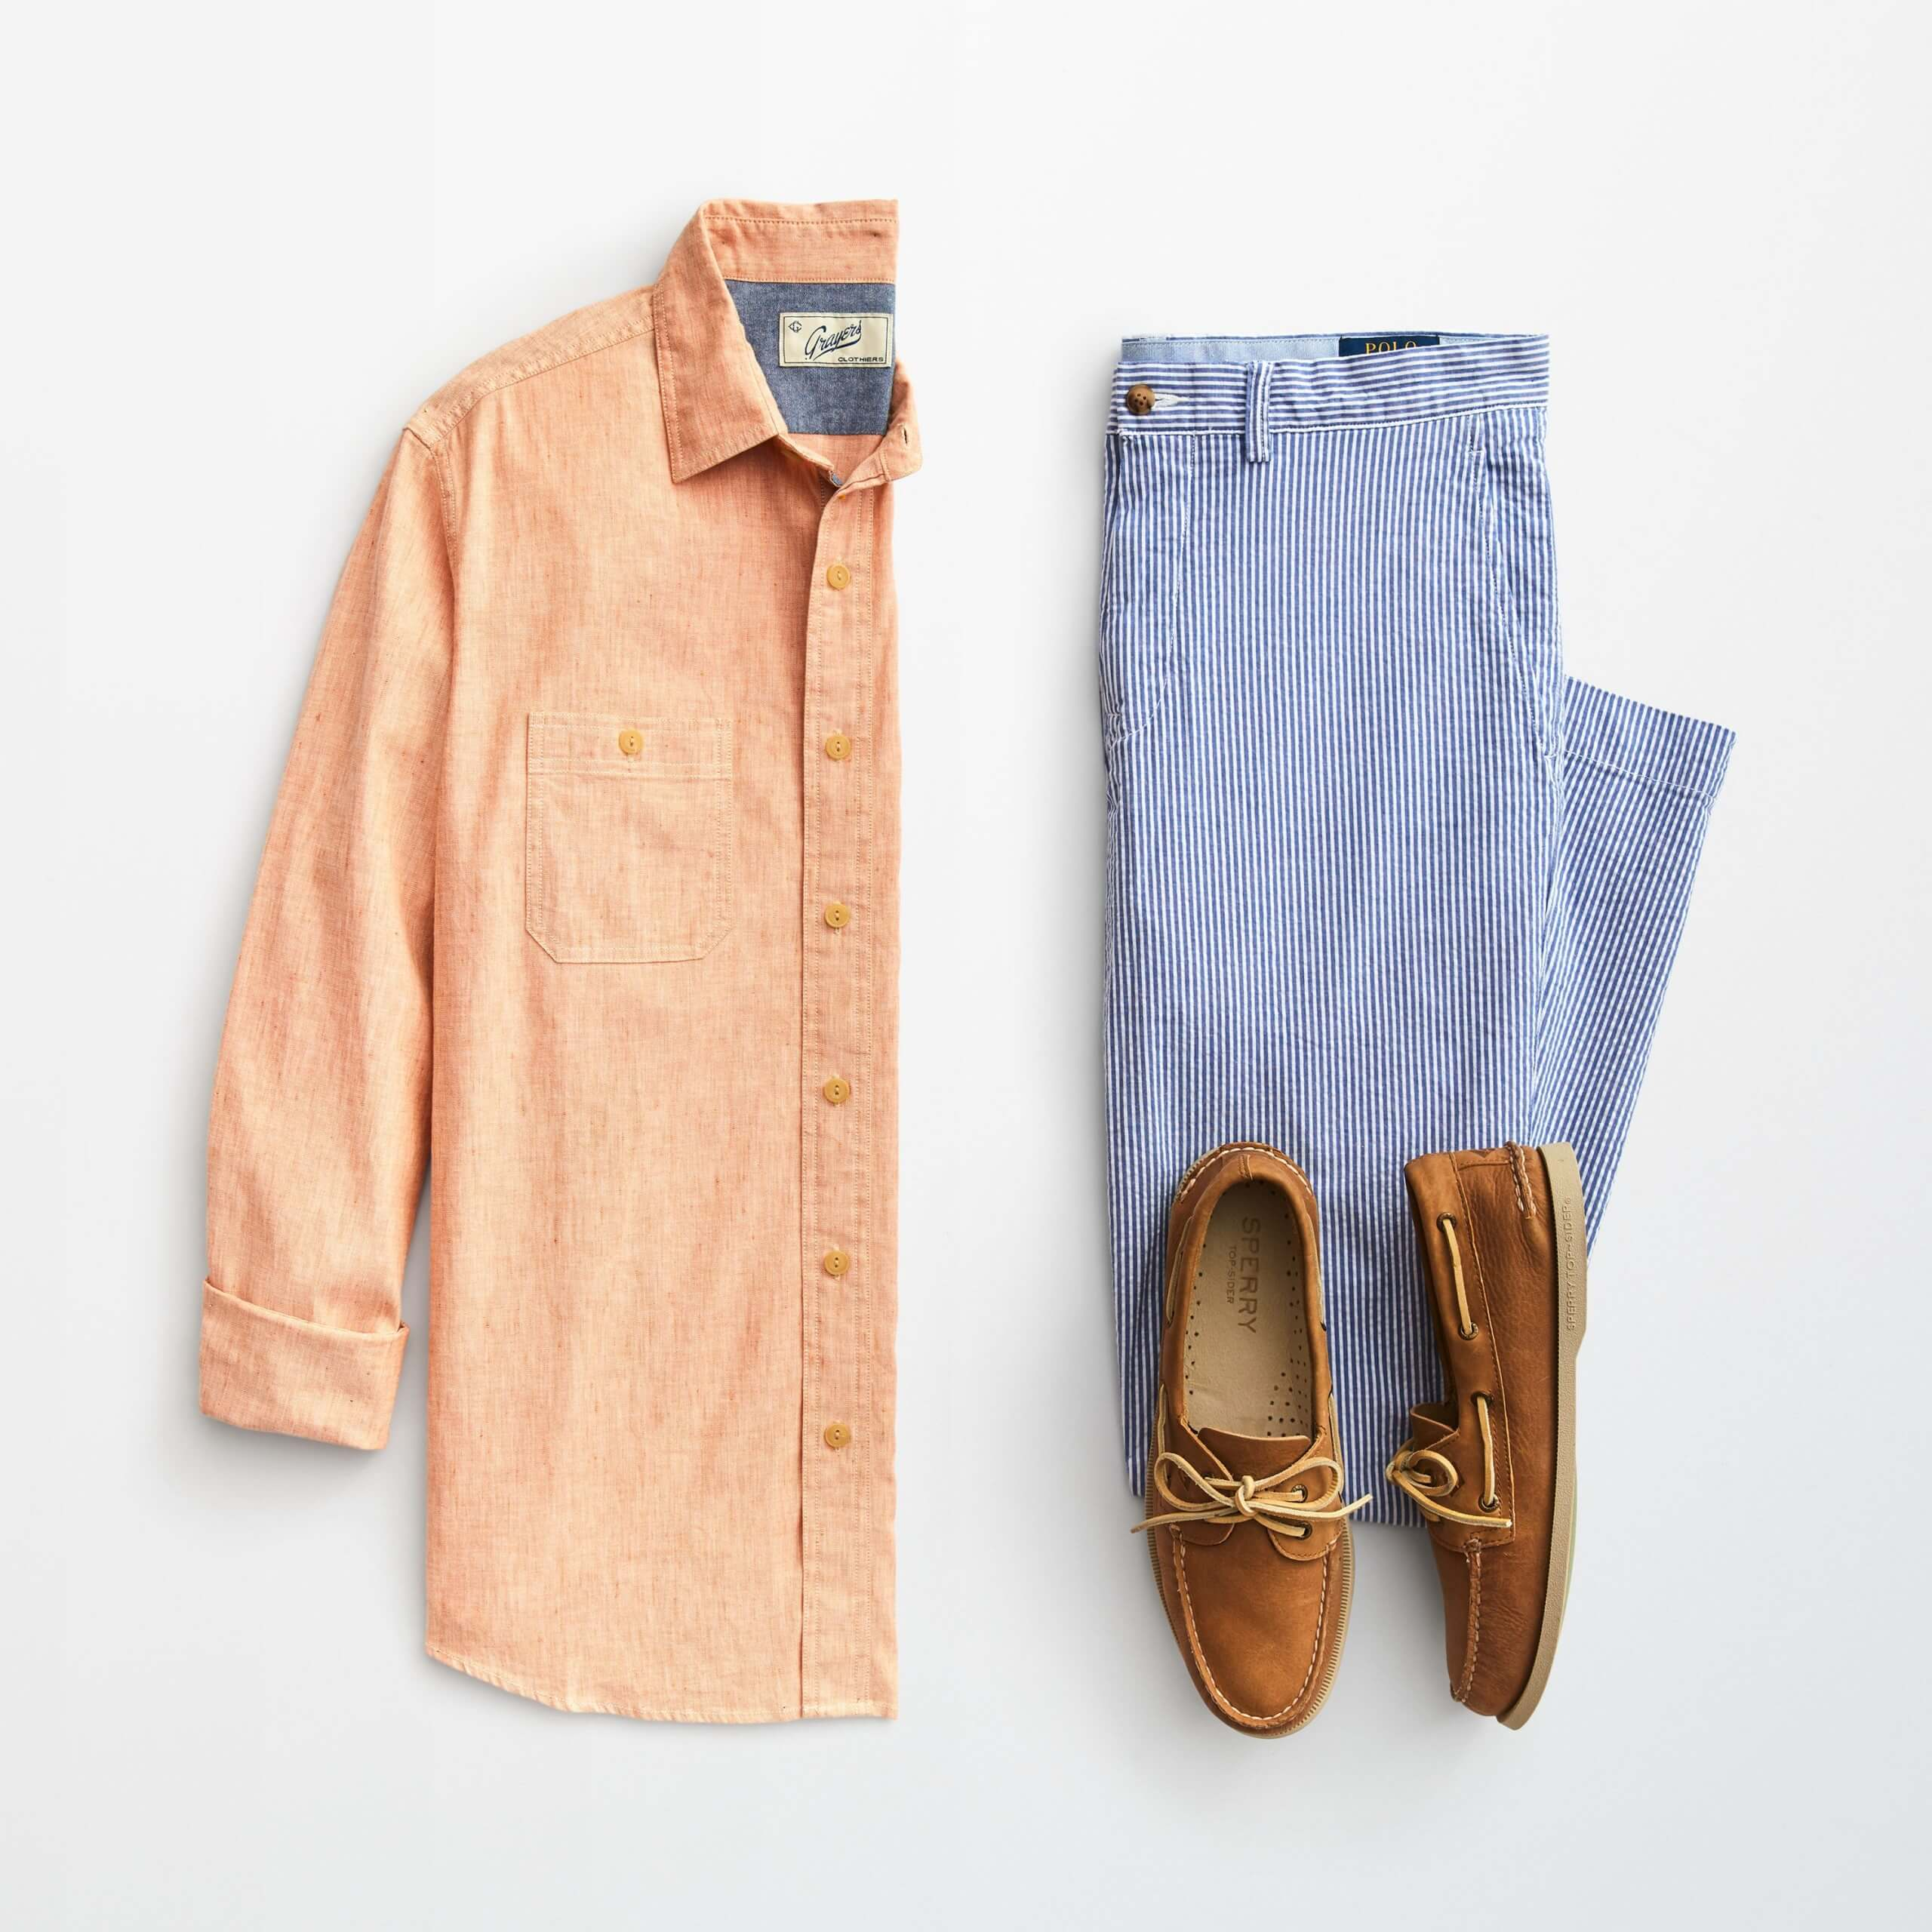 Stitch Fix Men's outfit laydown featuring an orange button-down shirt, blue striped chinos and brown boat shoes.